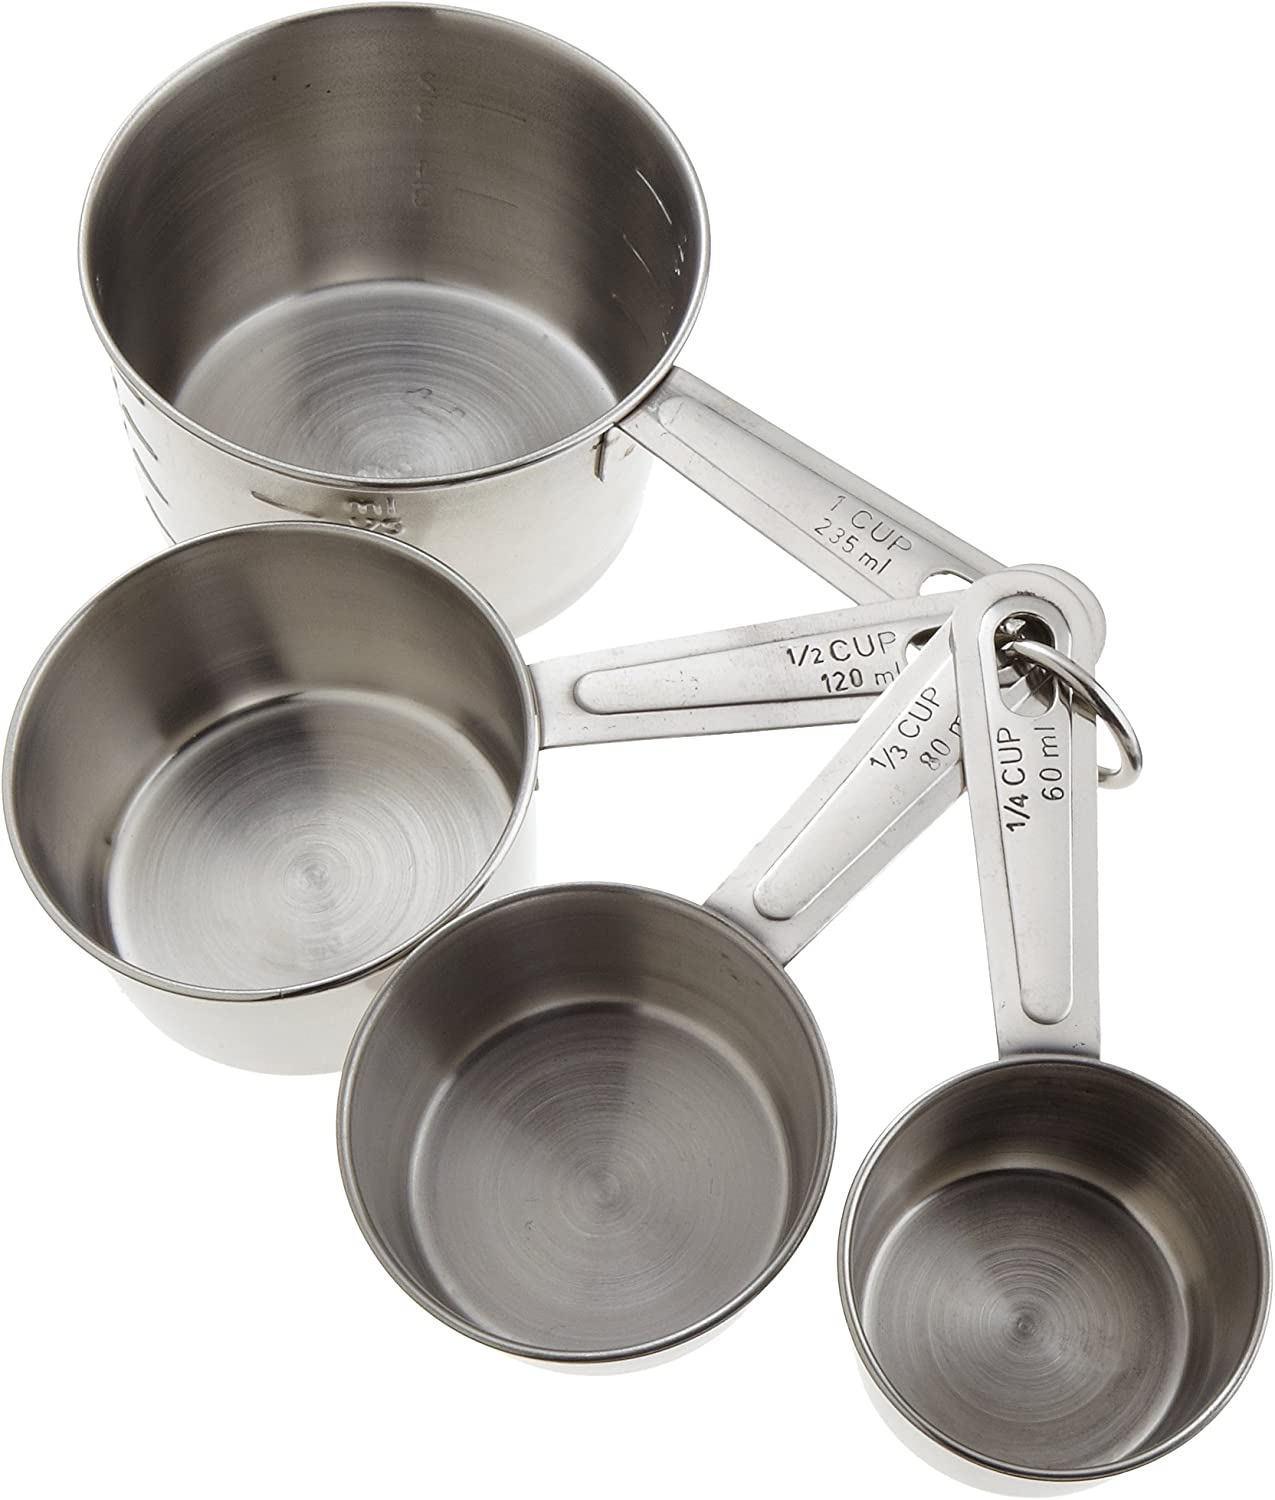 Good Cook Classic Stainless Steel Measuring Cups, Set of 4